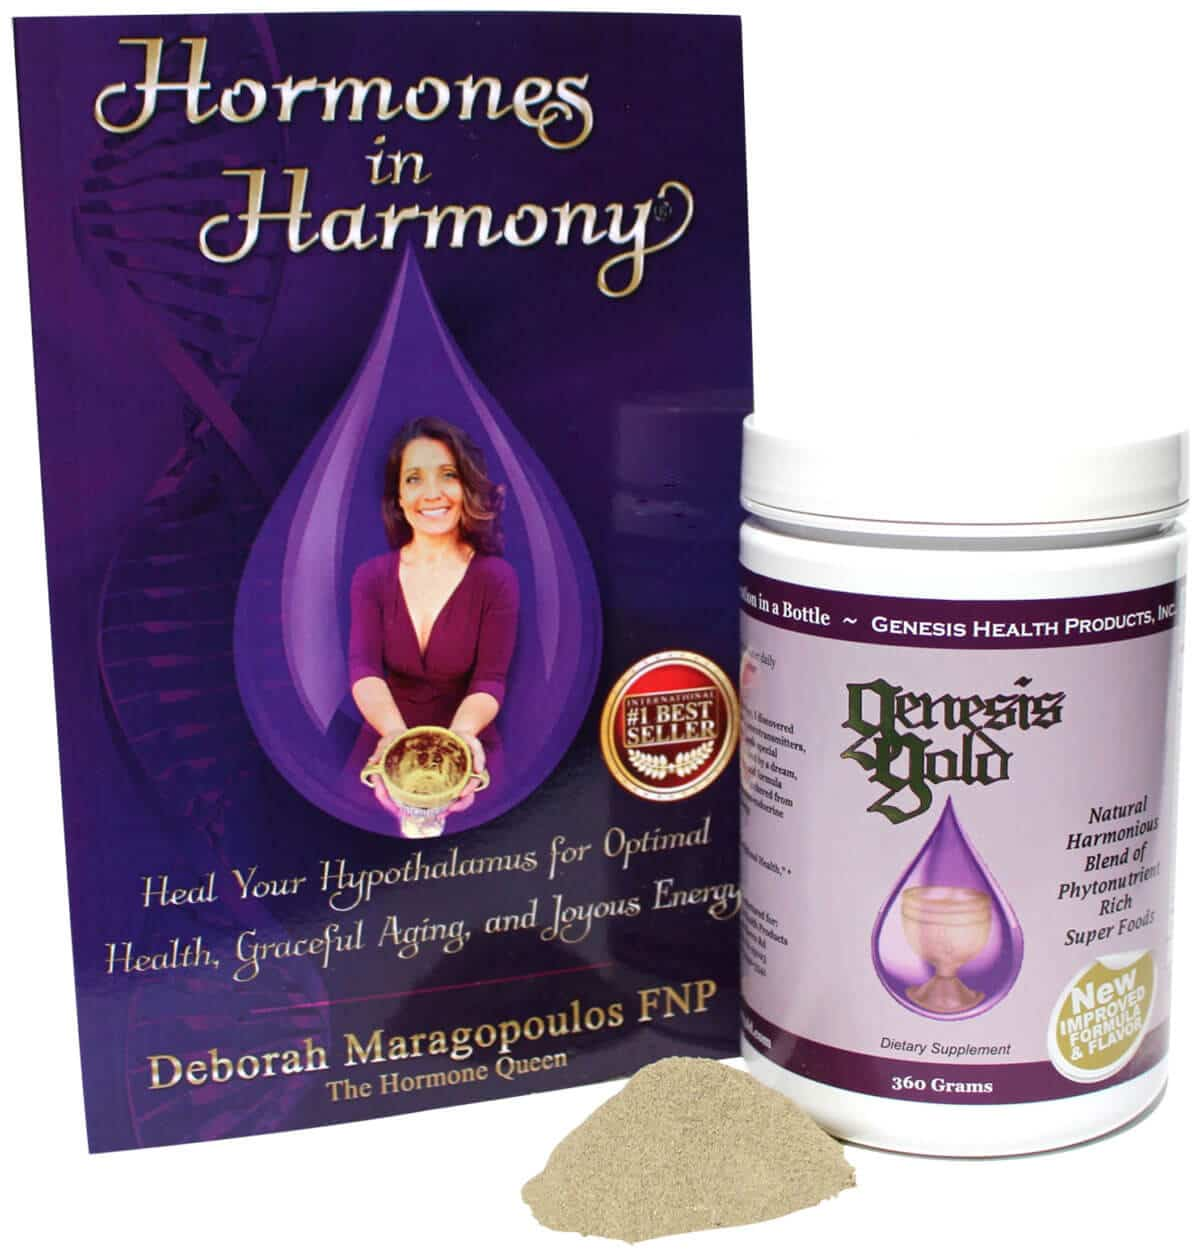 Hormones in Harmony book & Genesis Gold